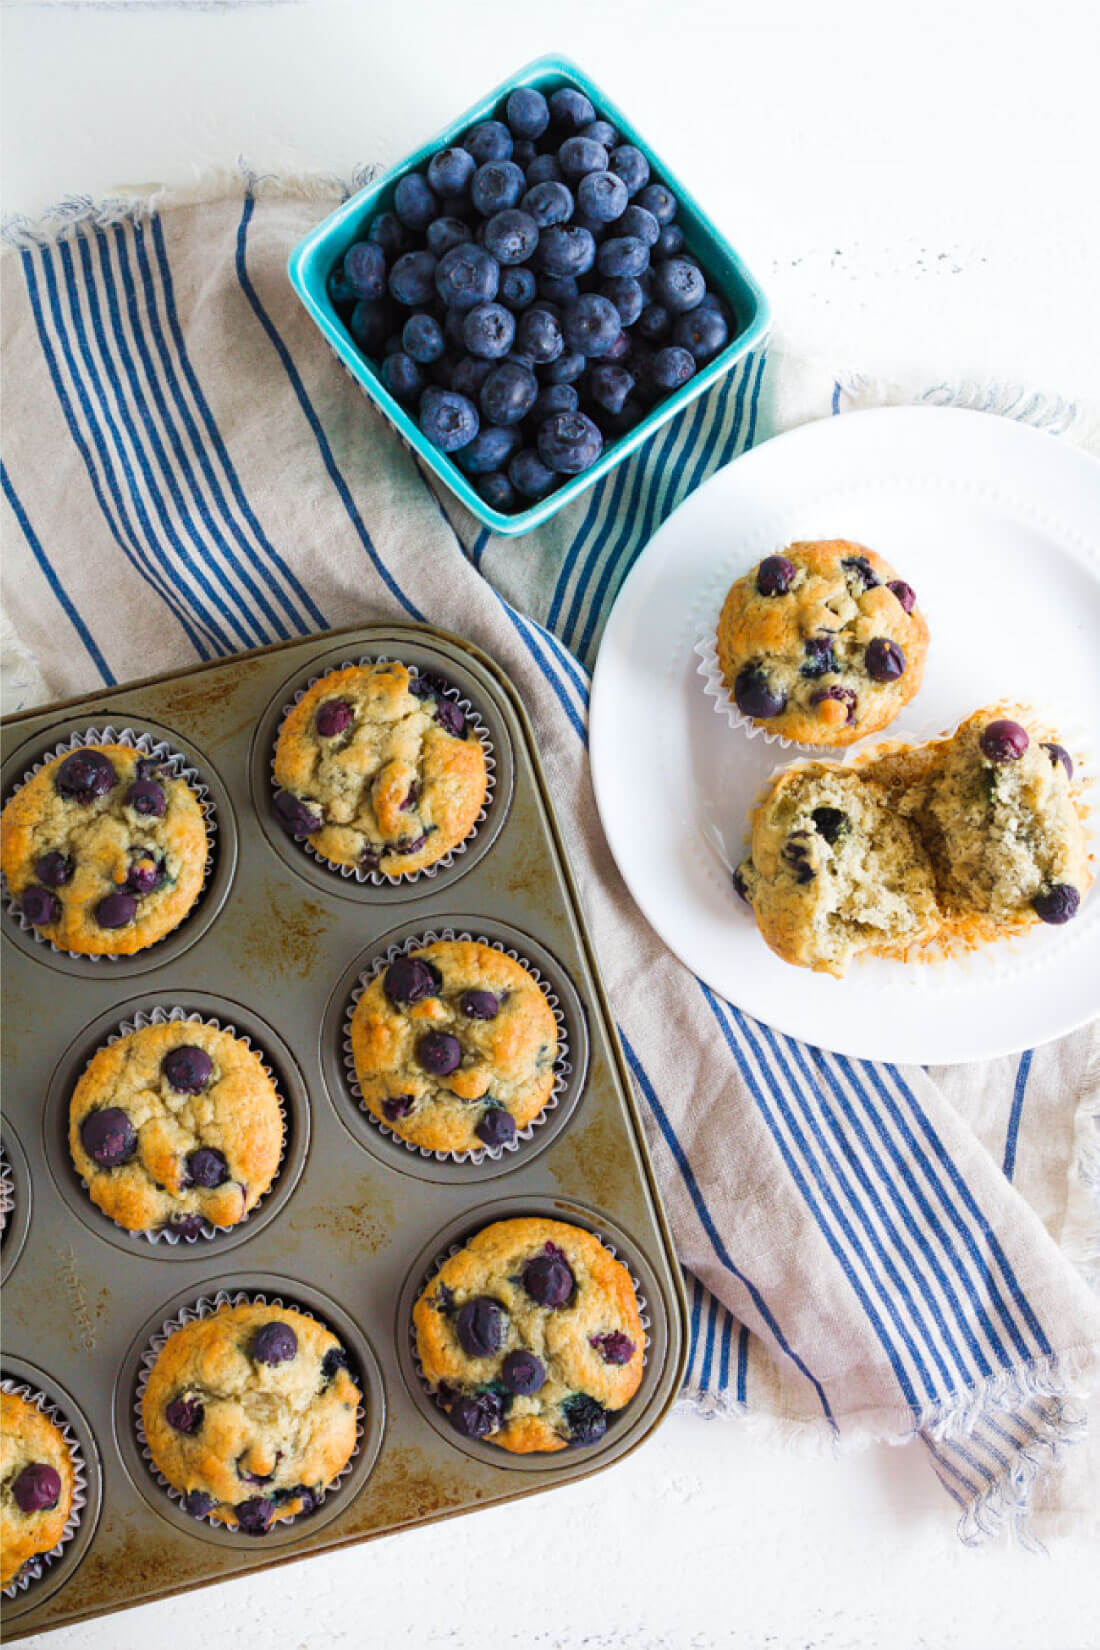 Simple to make and family friendly, these Banana Blueberry Muffins are super tasty. You'll want to make this blueberry muffin recipe over again and again from www.thirtyhandmadedays.com